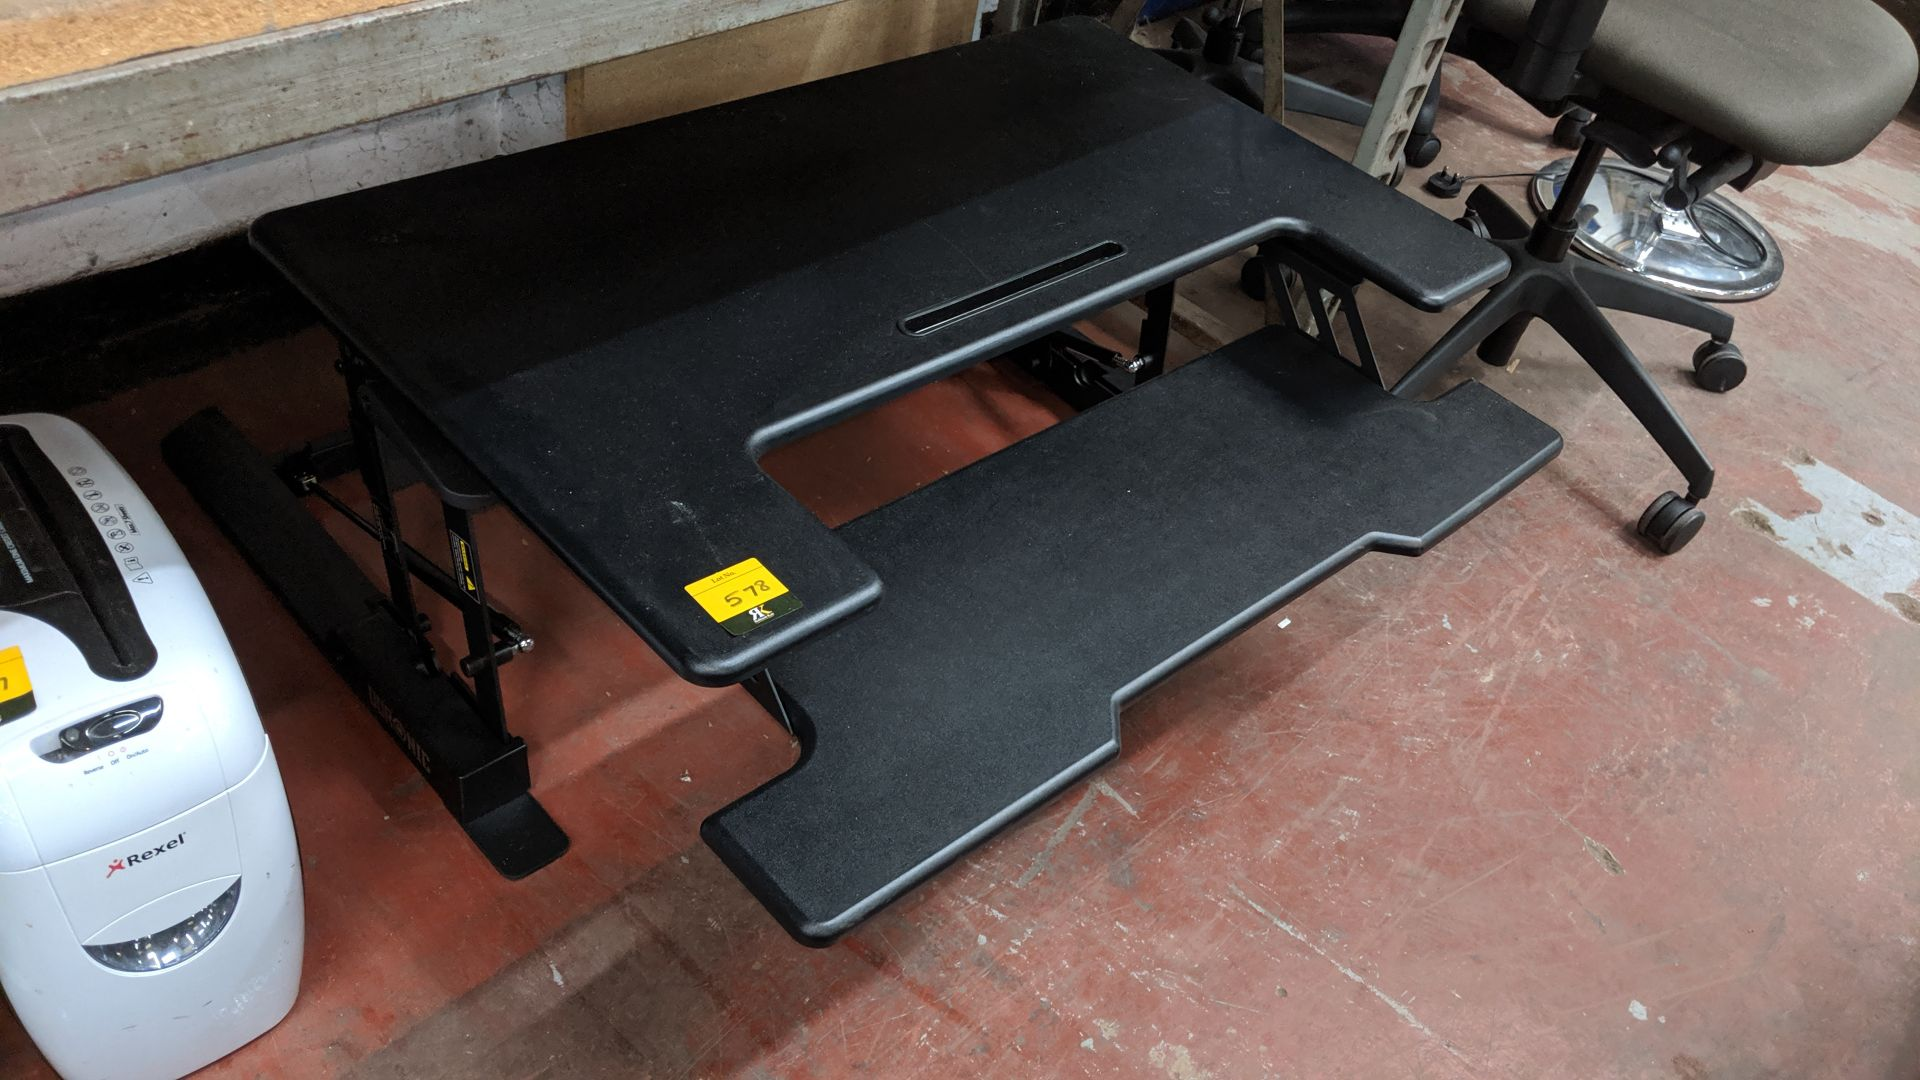 Lot 578 - Large heavy-duty computer desk attachment. Lots 560 - 580 form the total assets of a healthcare